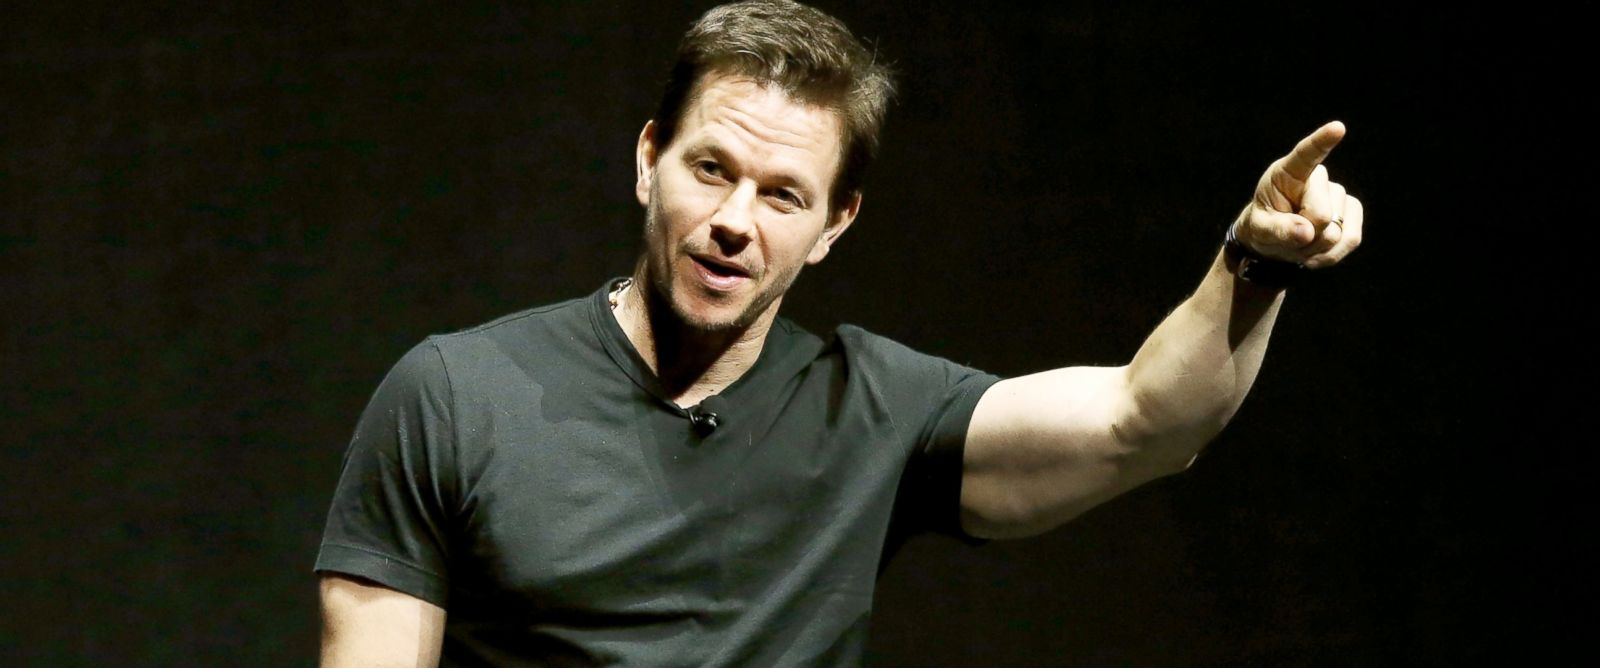 PHOTO: Mark Wahlberg speaks onstage at the Paramount Studios presentation Cinemacon 2014 at Caesars Palace, March 24, 2014, in Las Vegas.